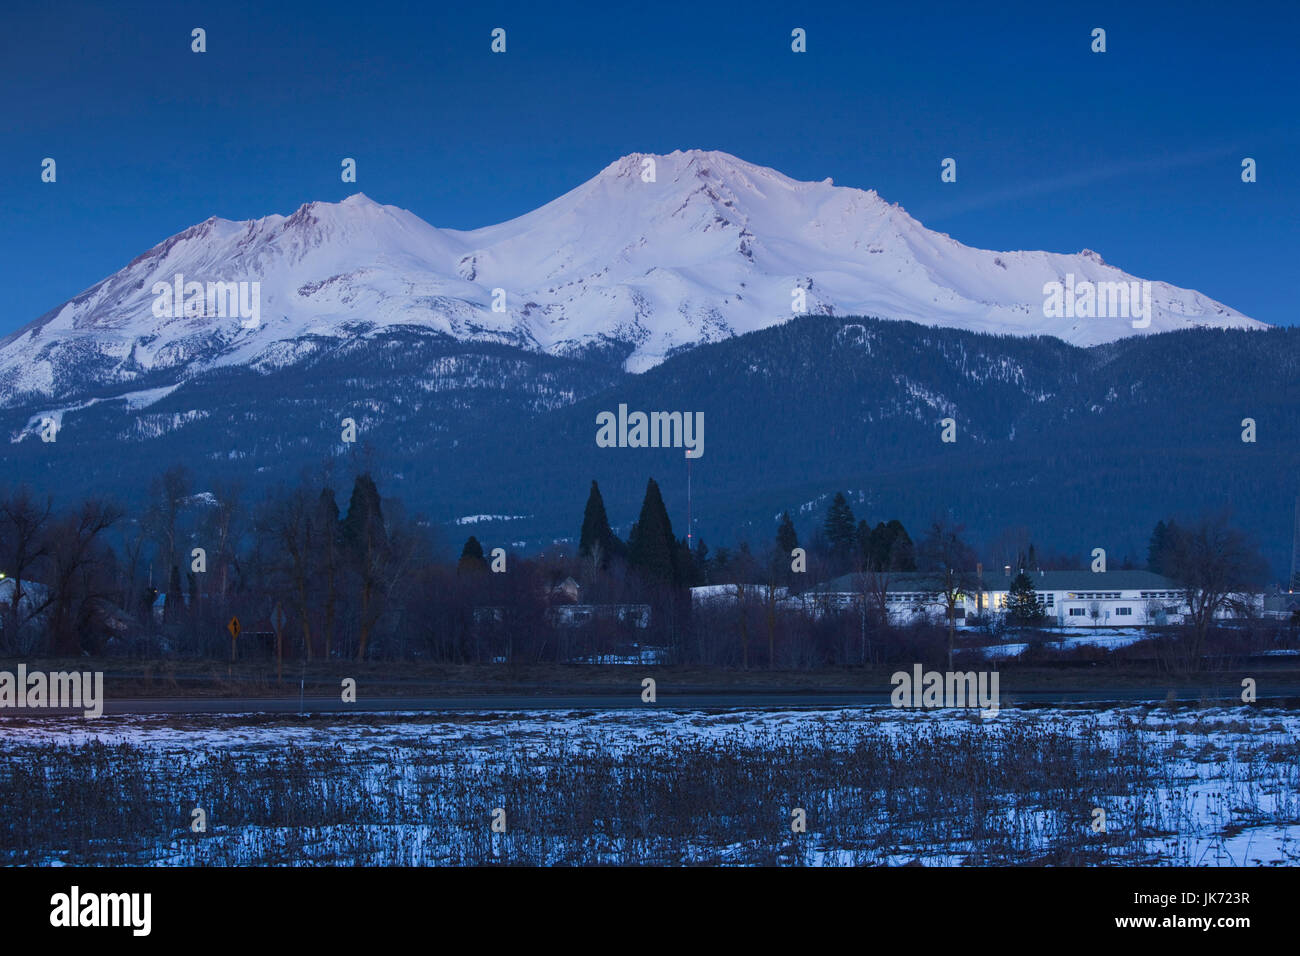 USA, California, Northern California, Northern Mountains, Mount Shasta, view of Mt. Shasta, elevation 14,162 feet, - Stock Image